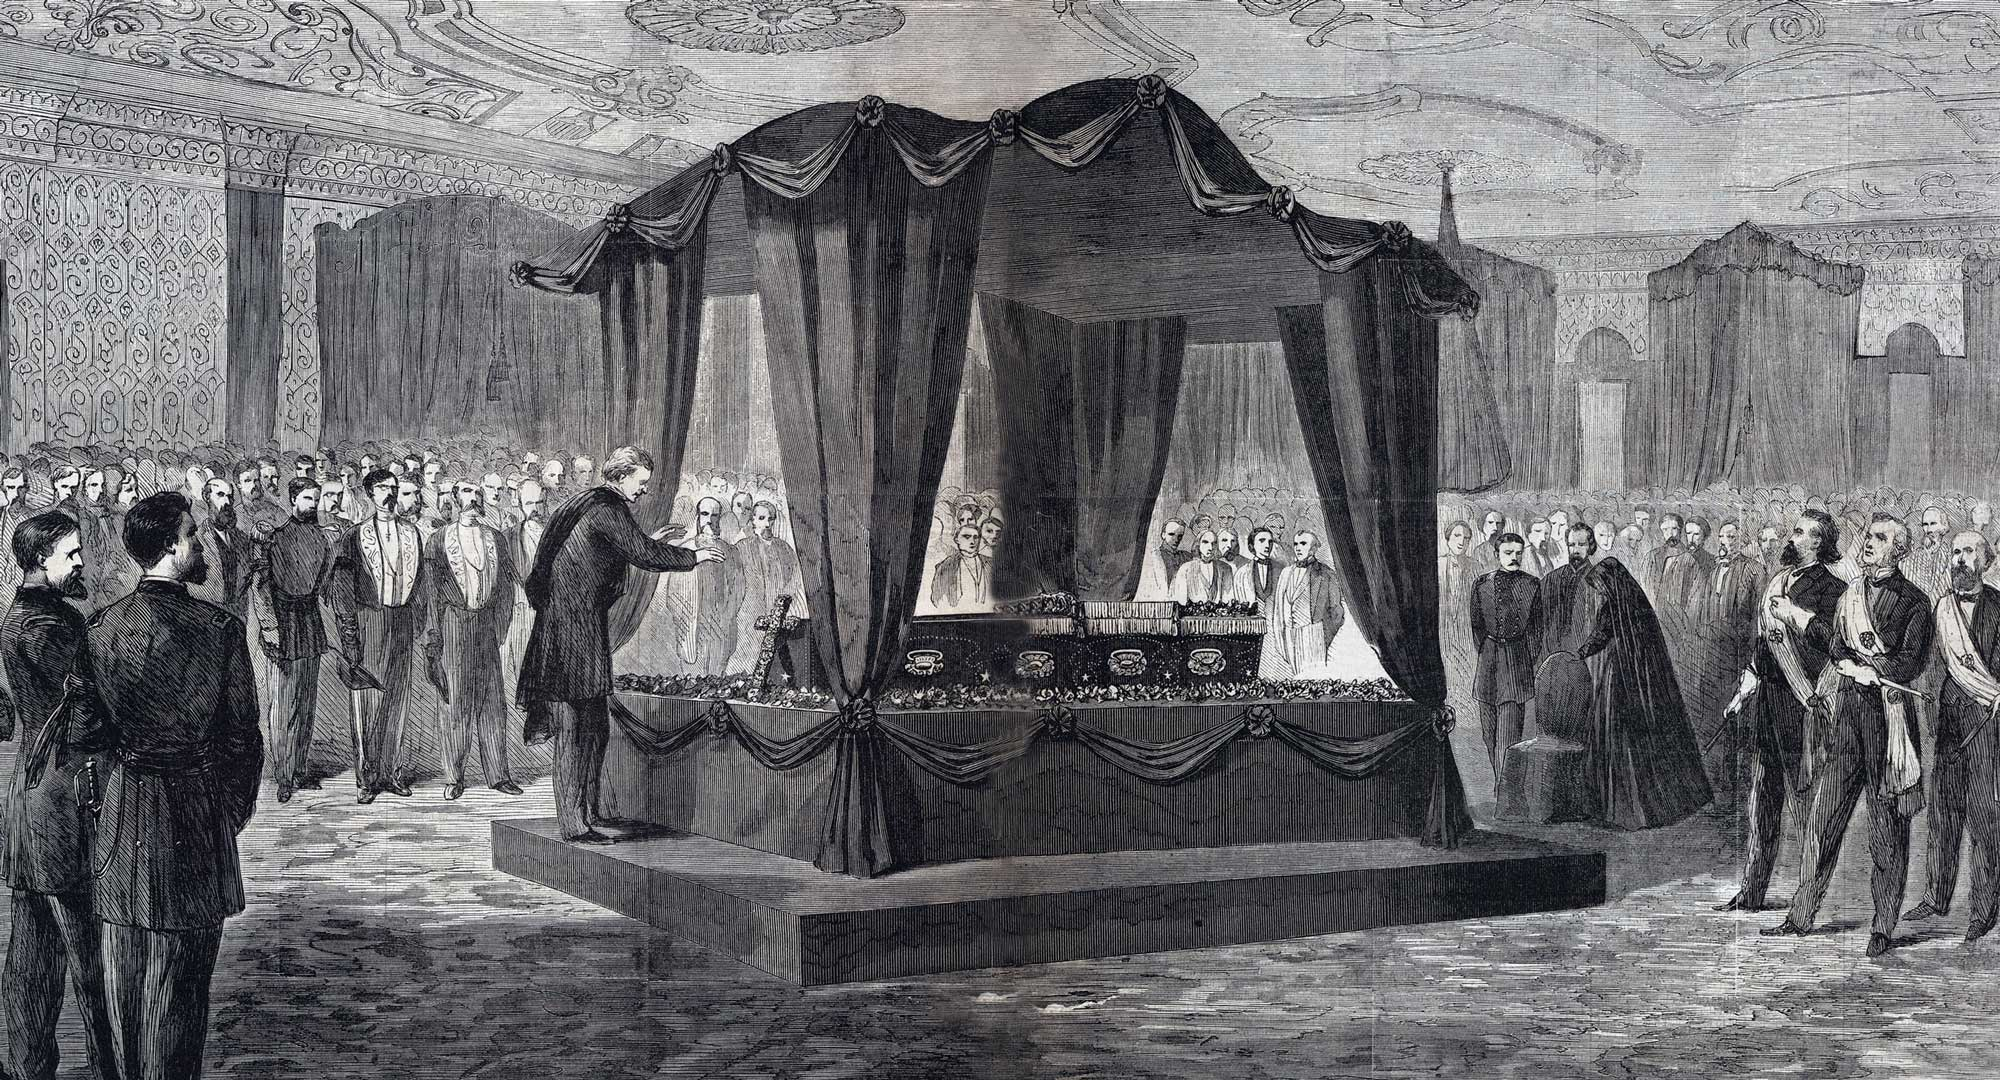 Pencil sketch of White House funeral showing catafalque and casket for President Abraham Lincoln